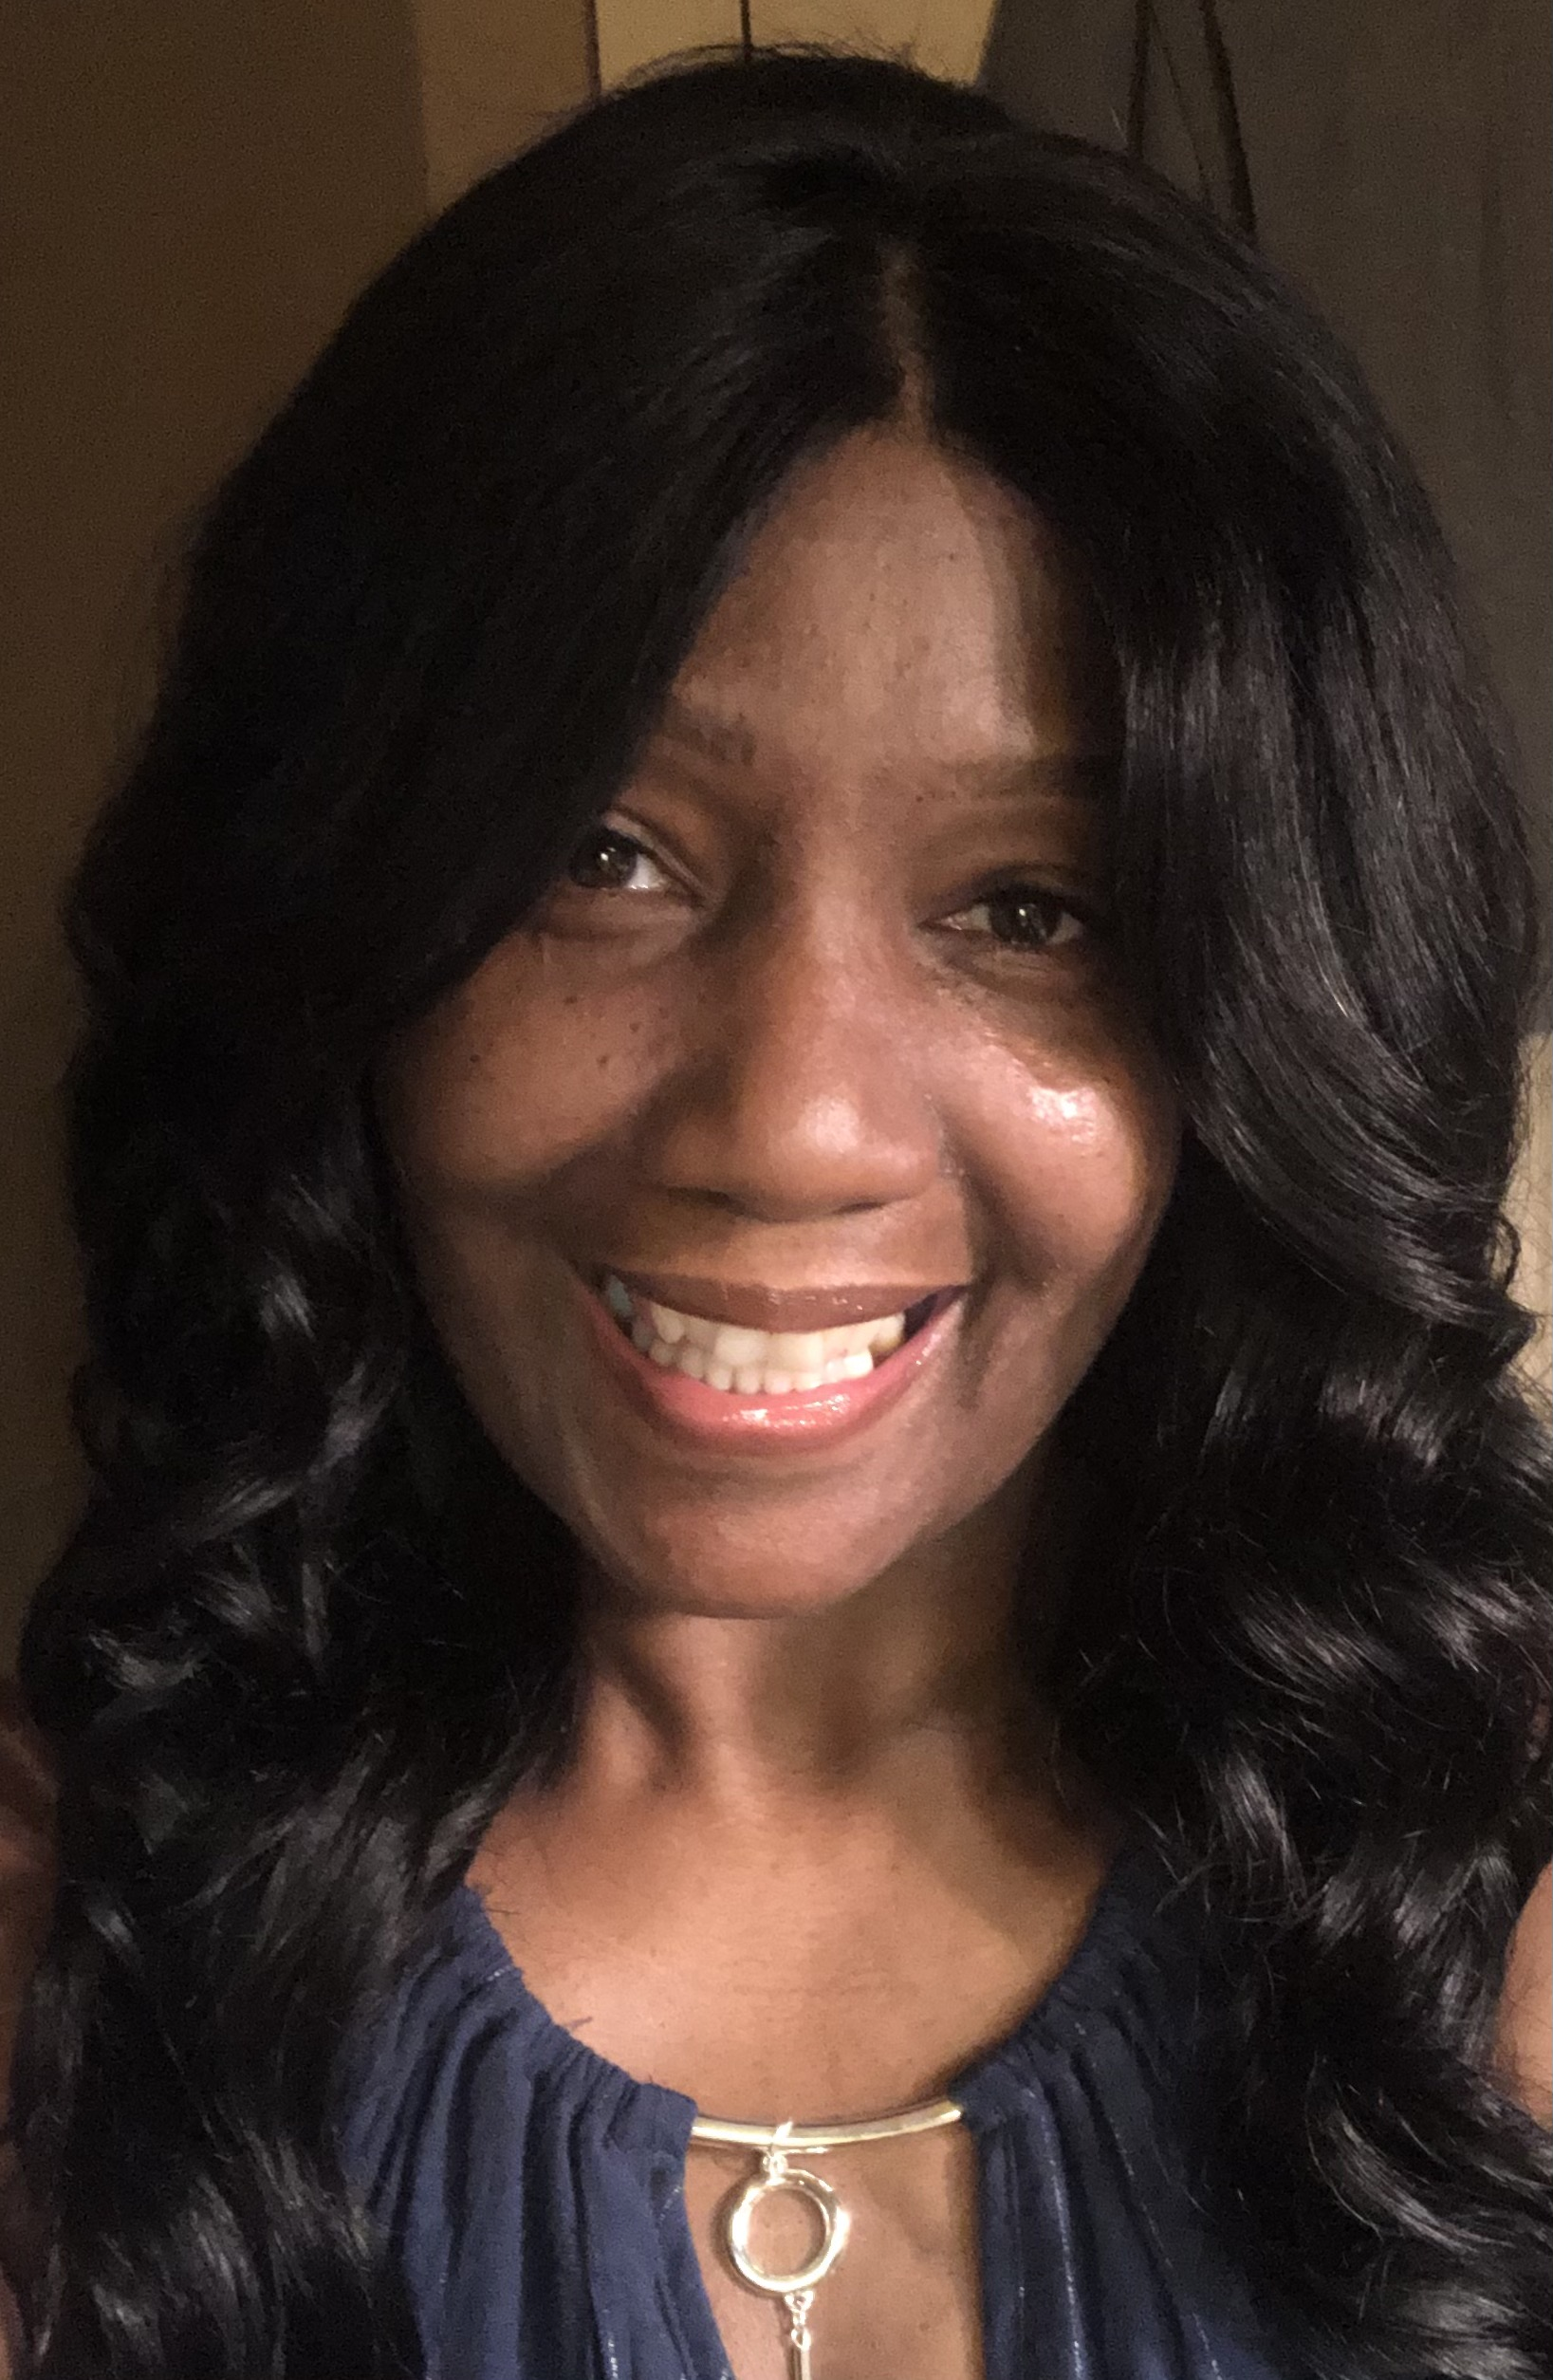 Carletta Rainey is achieving a lifelong dream of earning her bachelor's degree as she graduates this month from the University of Arkansas at Little Rock with a bachelor's degree in applied communication.